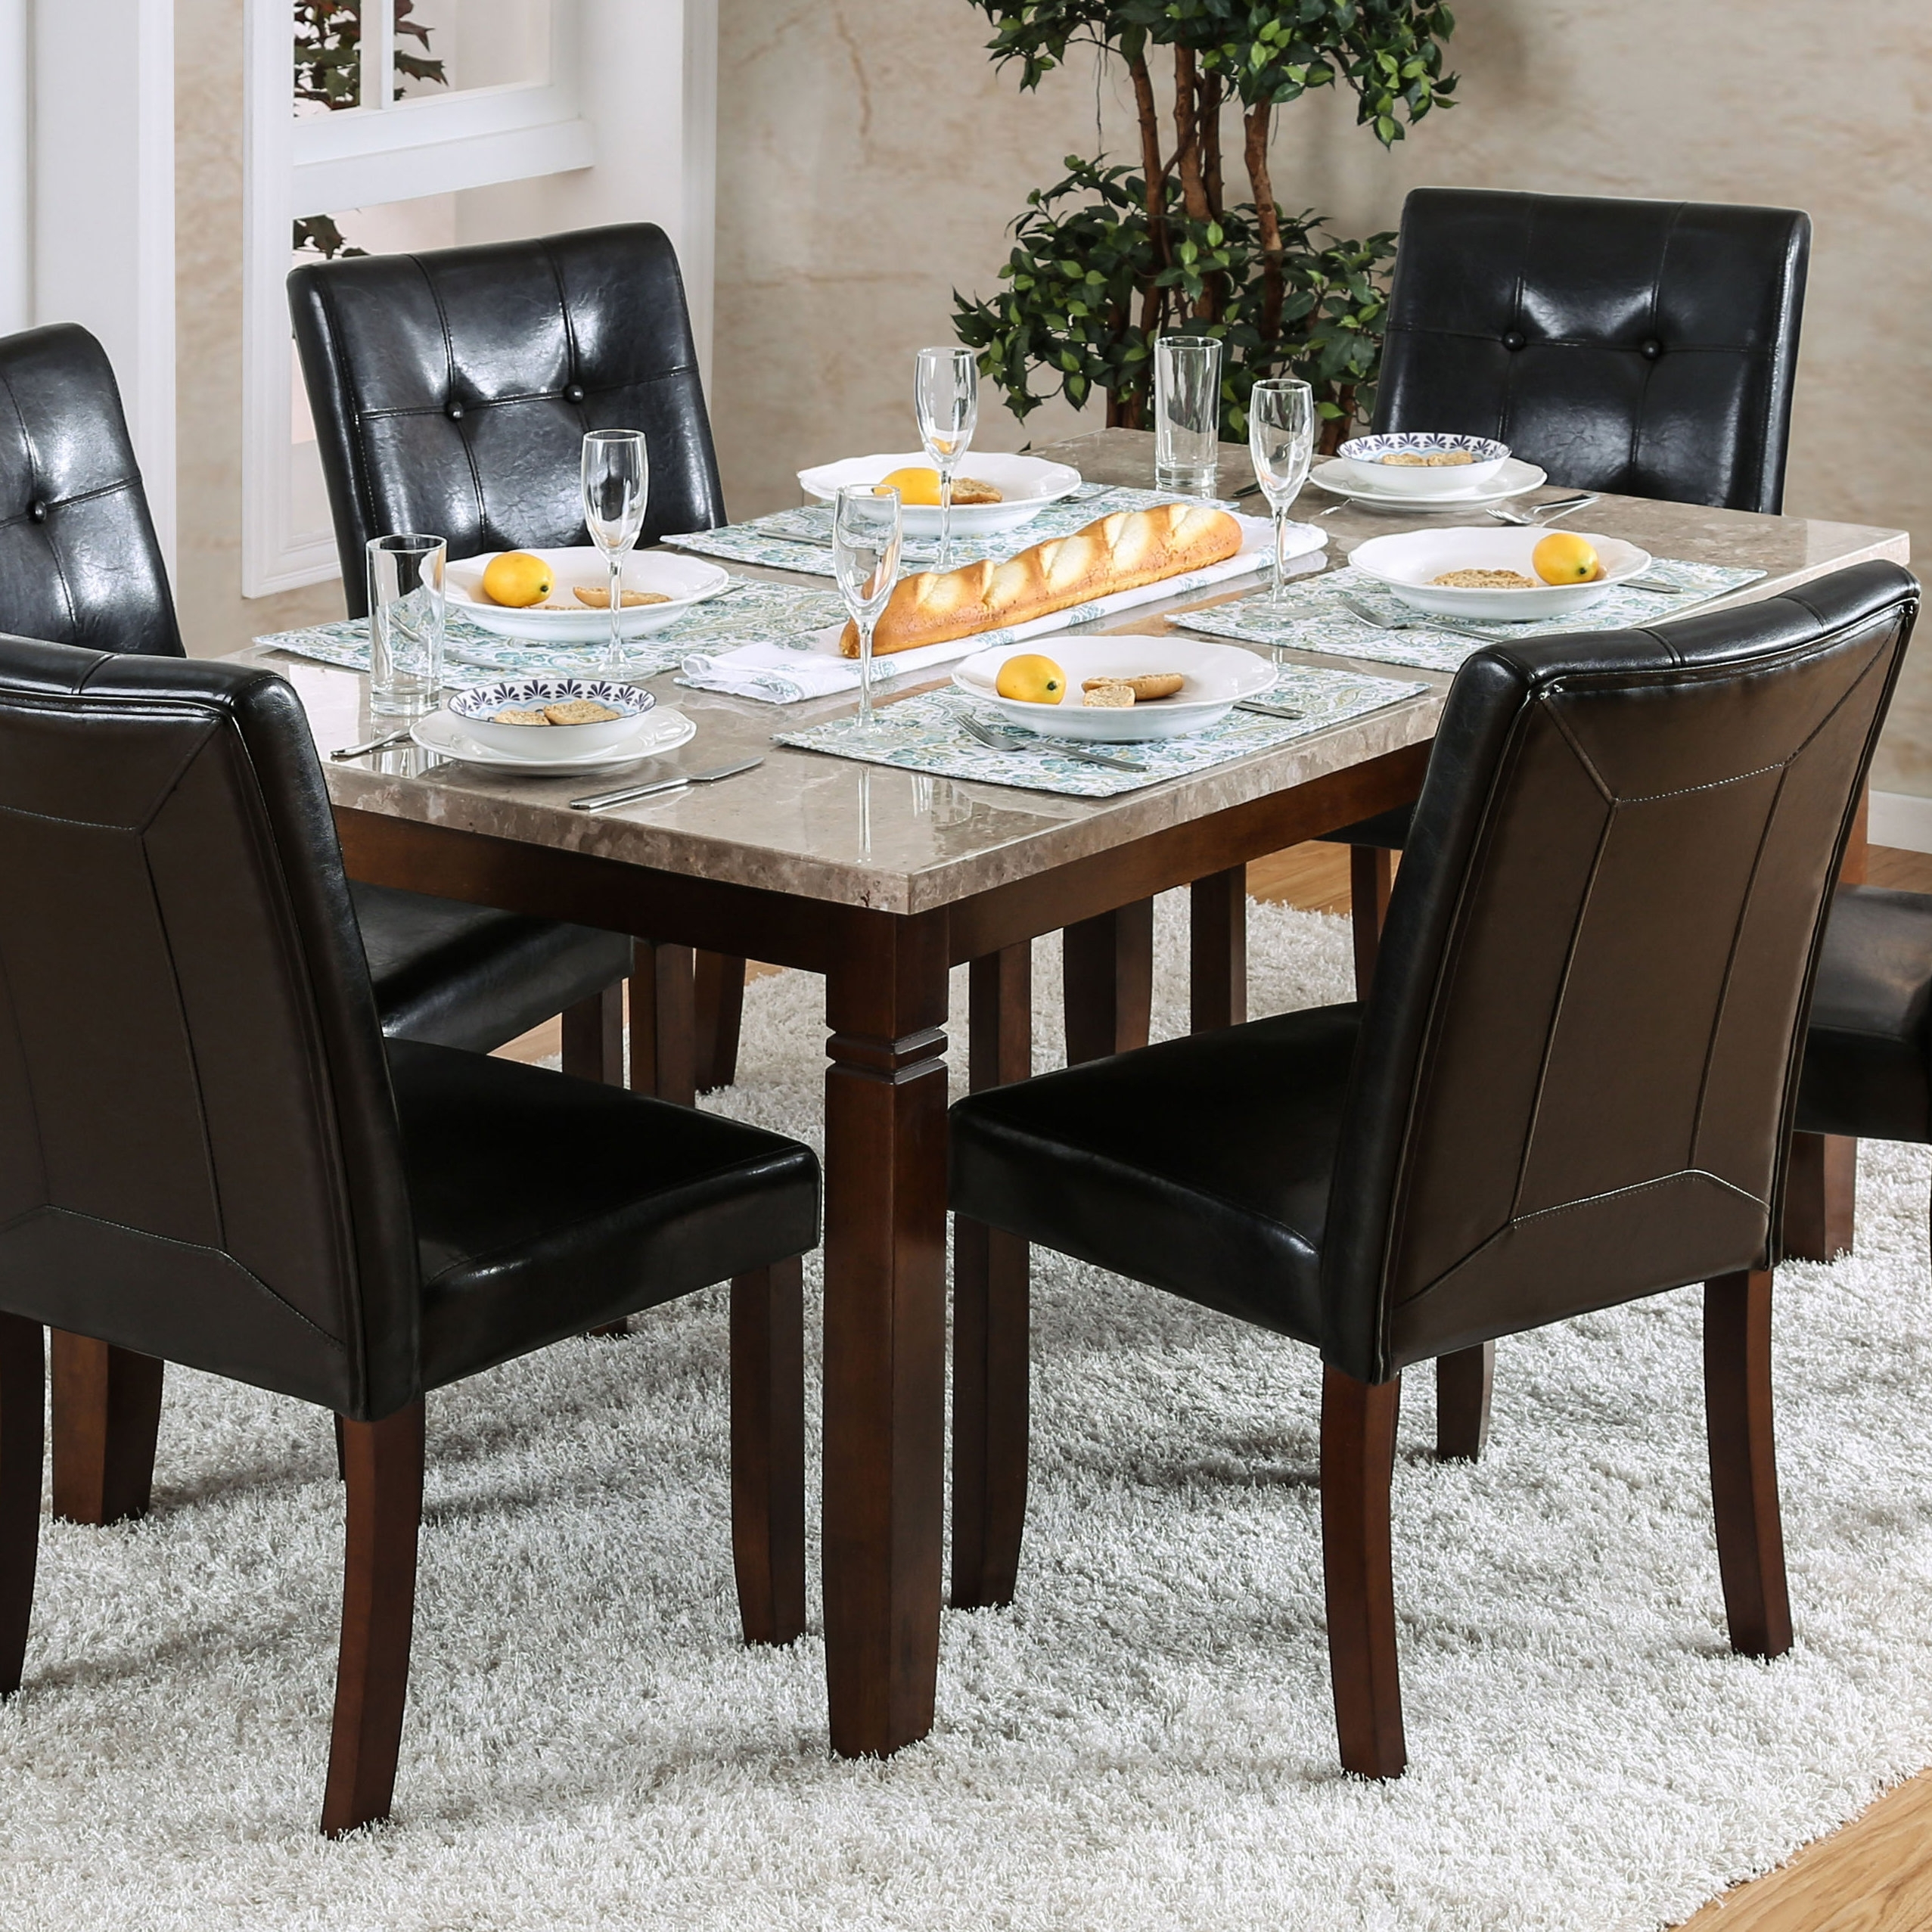 Red Barrel Studio Gibbons 7 Piece Dining Set | Wayfair Inside Most Current Candice Ii 6 Piece Extension Rectangle Dining Sets (Image 13 of 20)